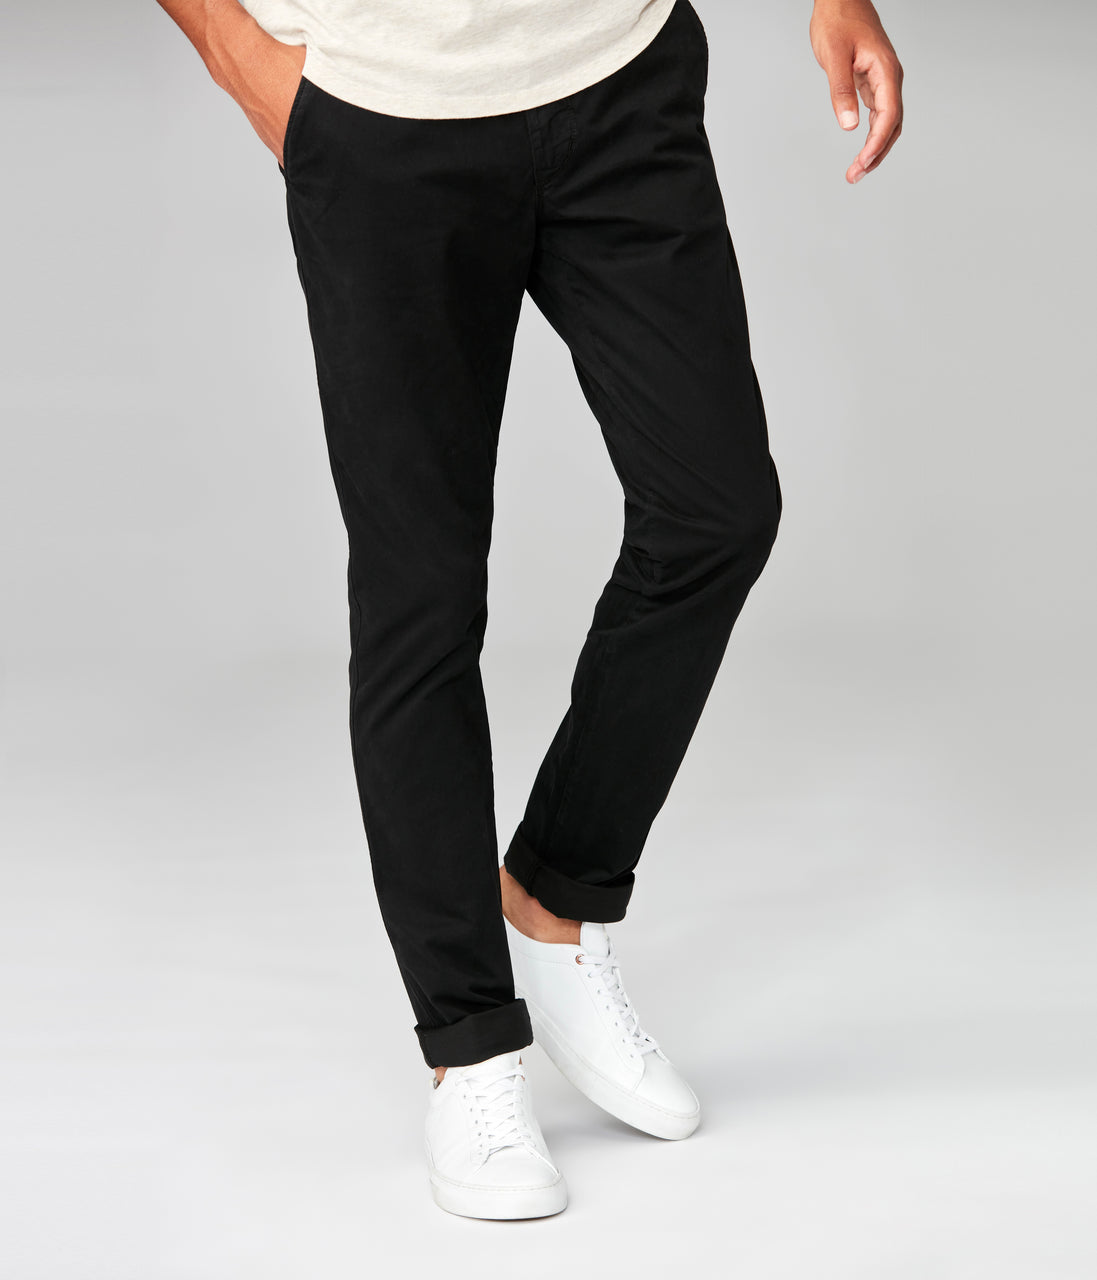 Star Chino in Pro Stretch Twill - Black - Good Man Brand - Star Chino in Pro Stretch Twill - Black